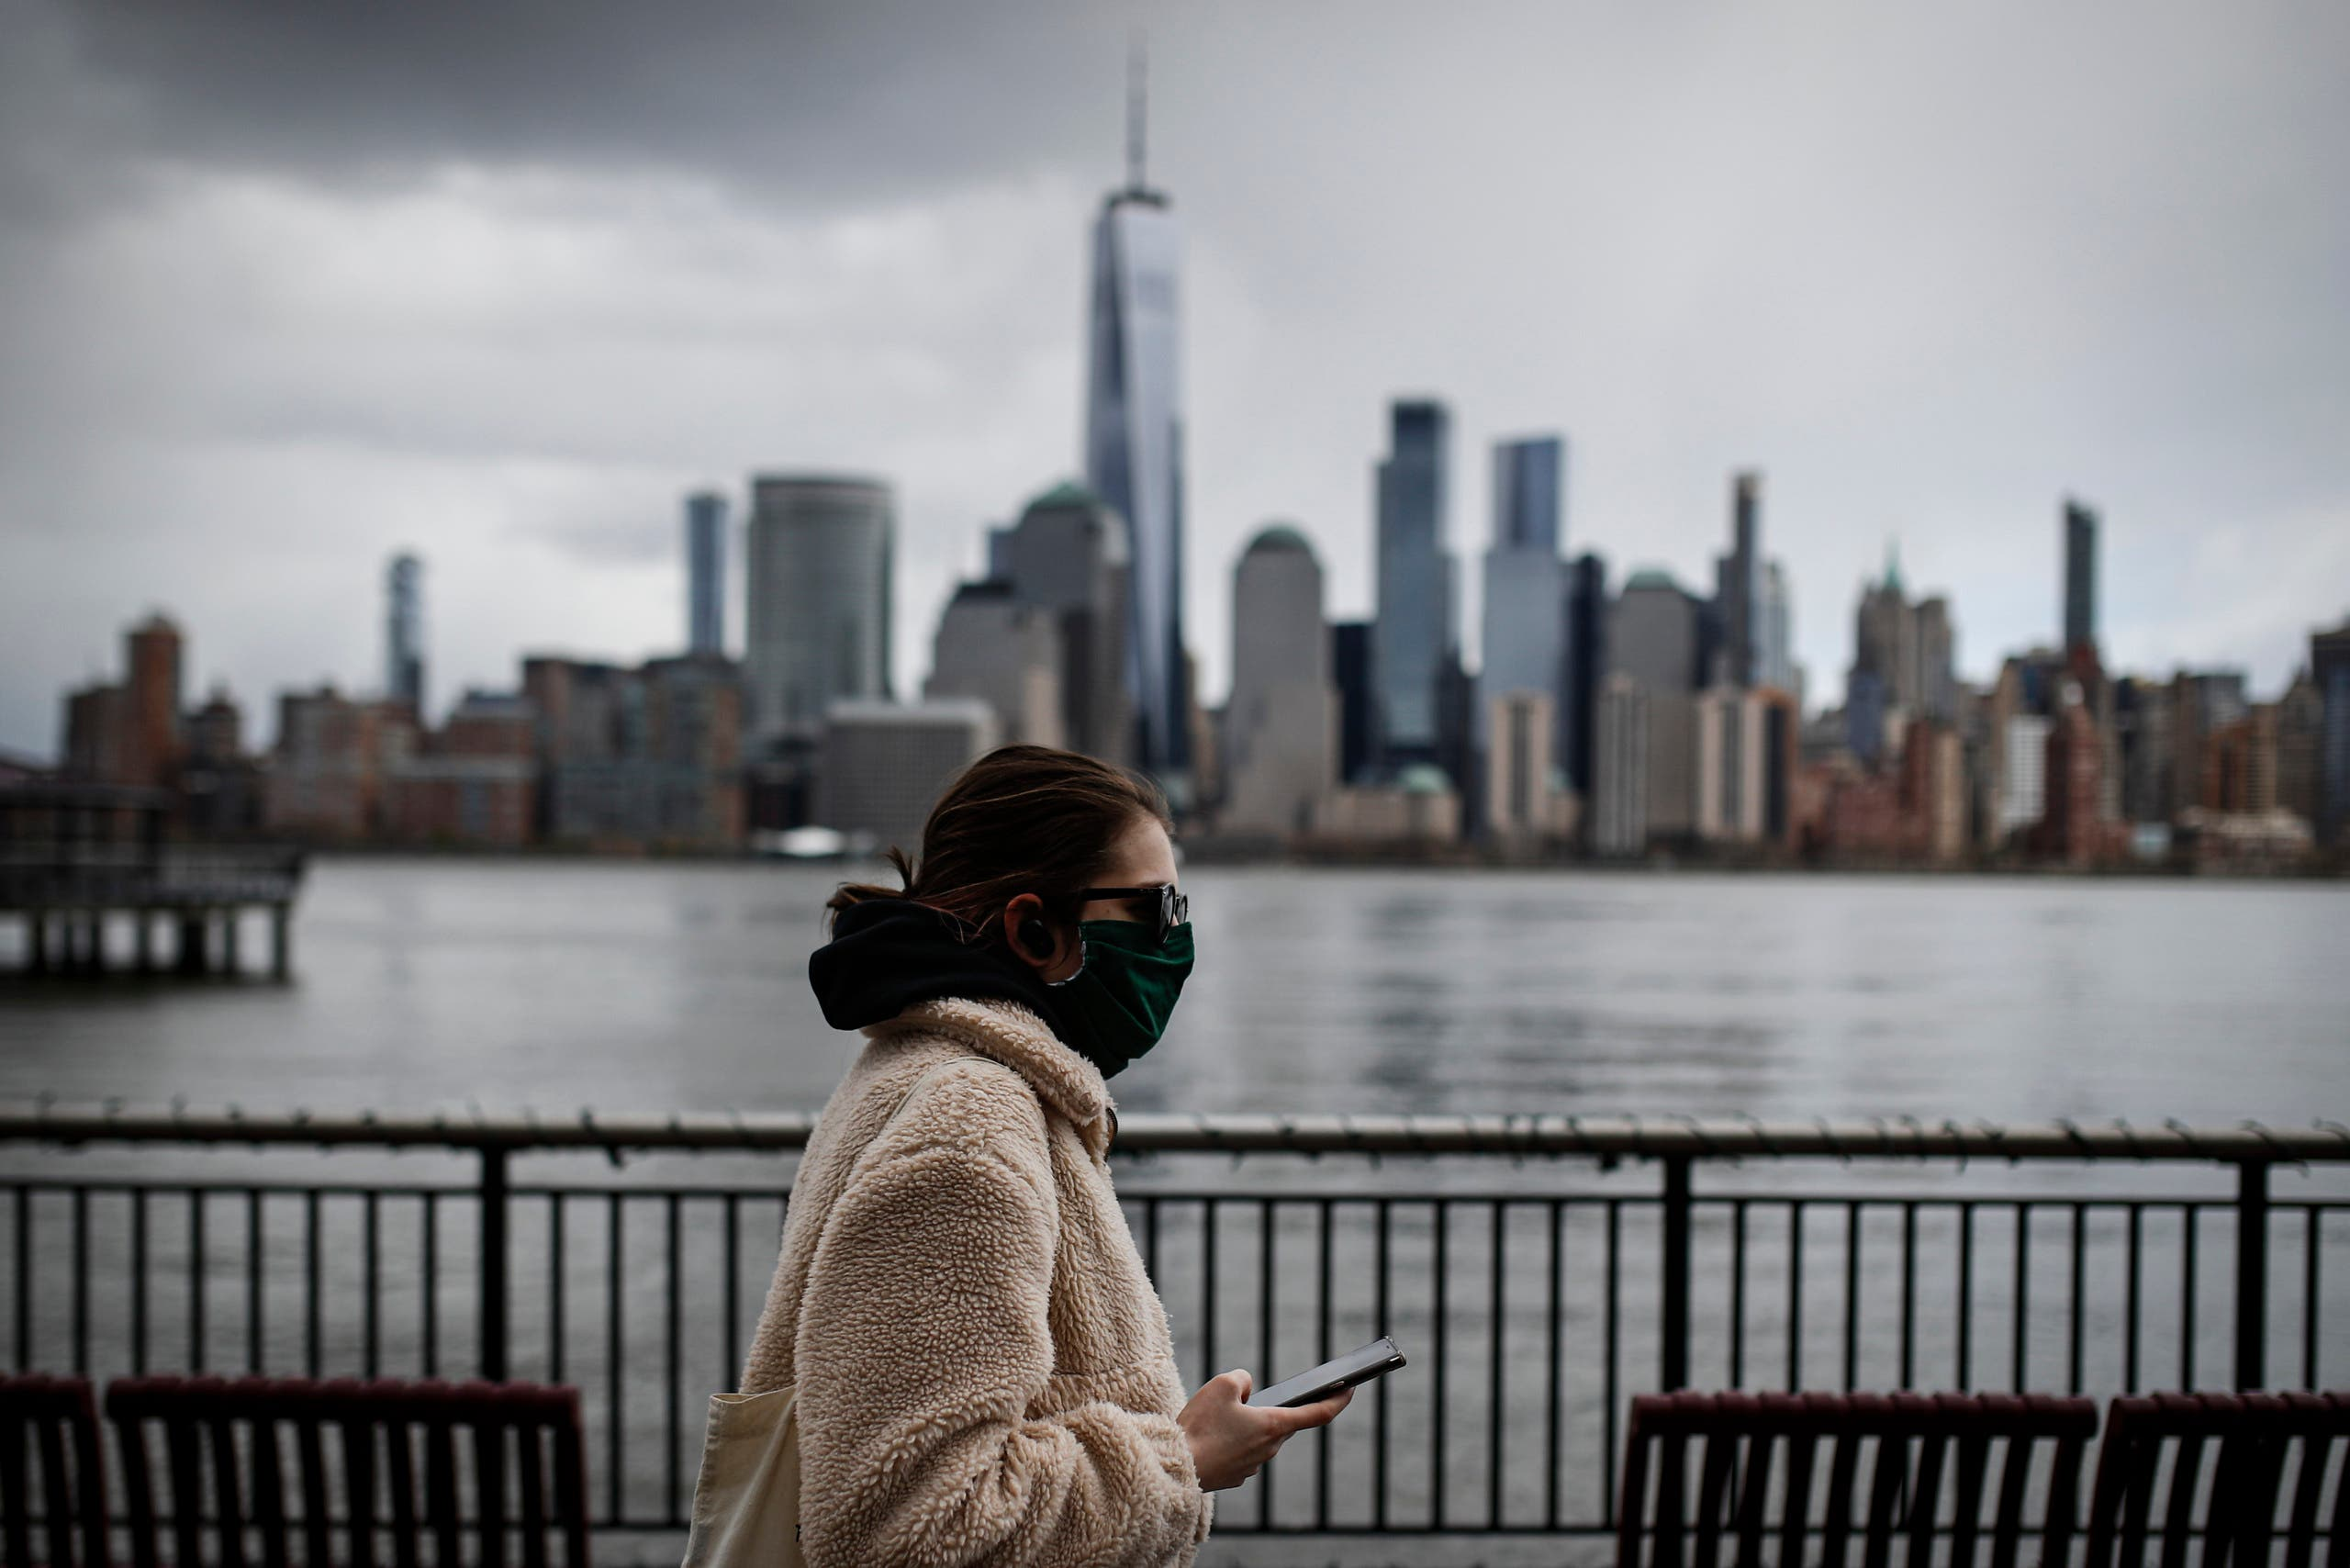 The downtown New York City skyline looms over pedestrians wearing masks due to coronavirus concerns, on Friday, April 10, 2020, in Jersey City, N.J. (AP)